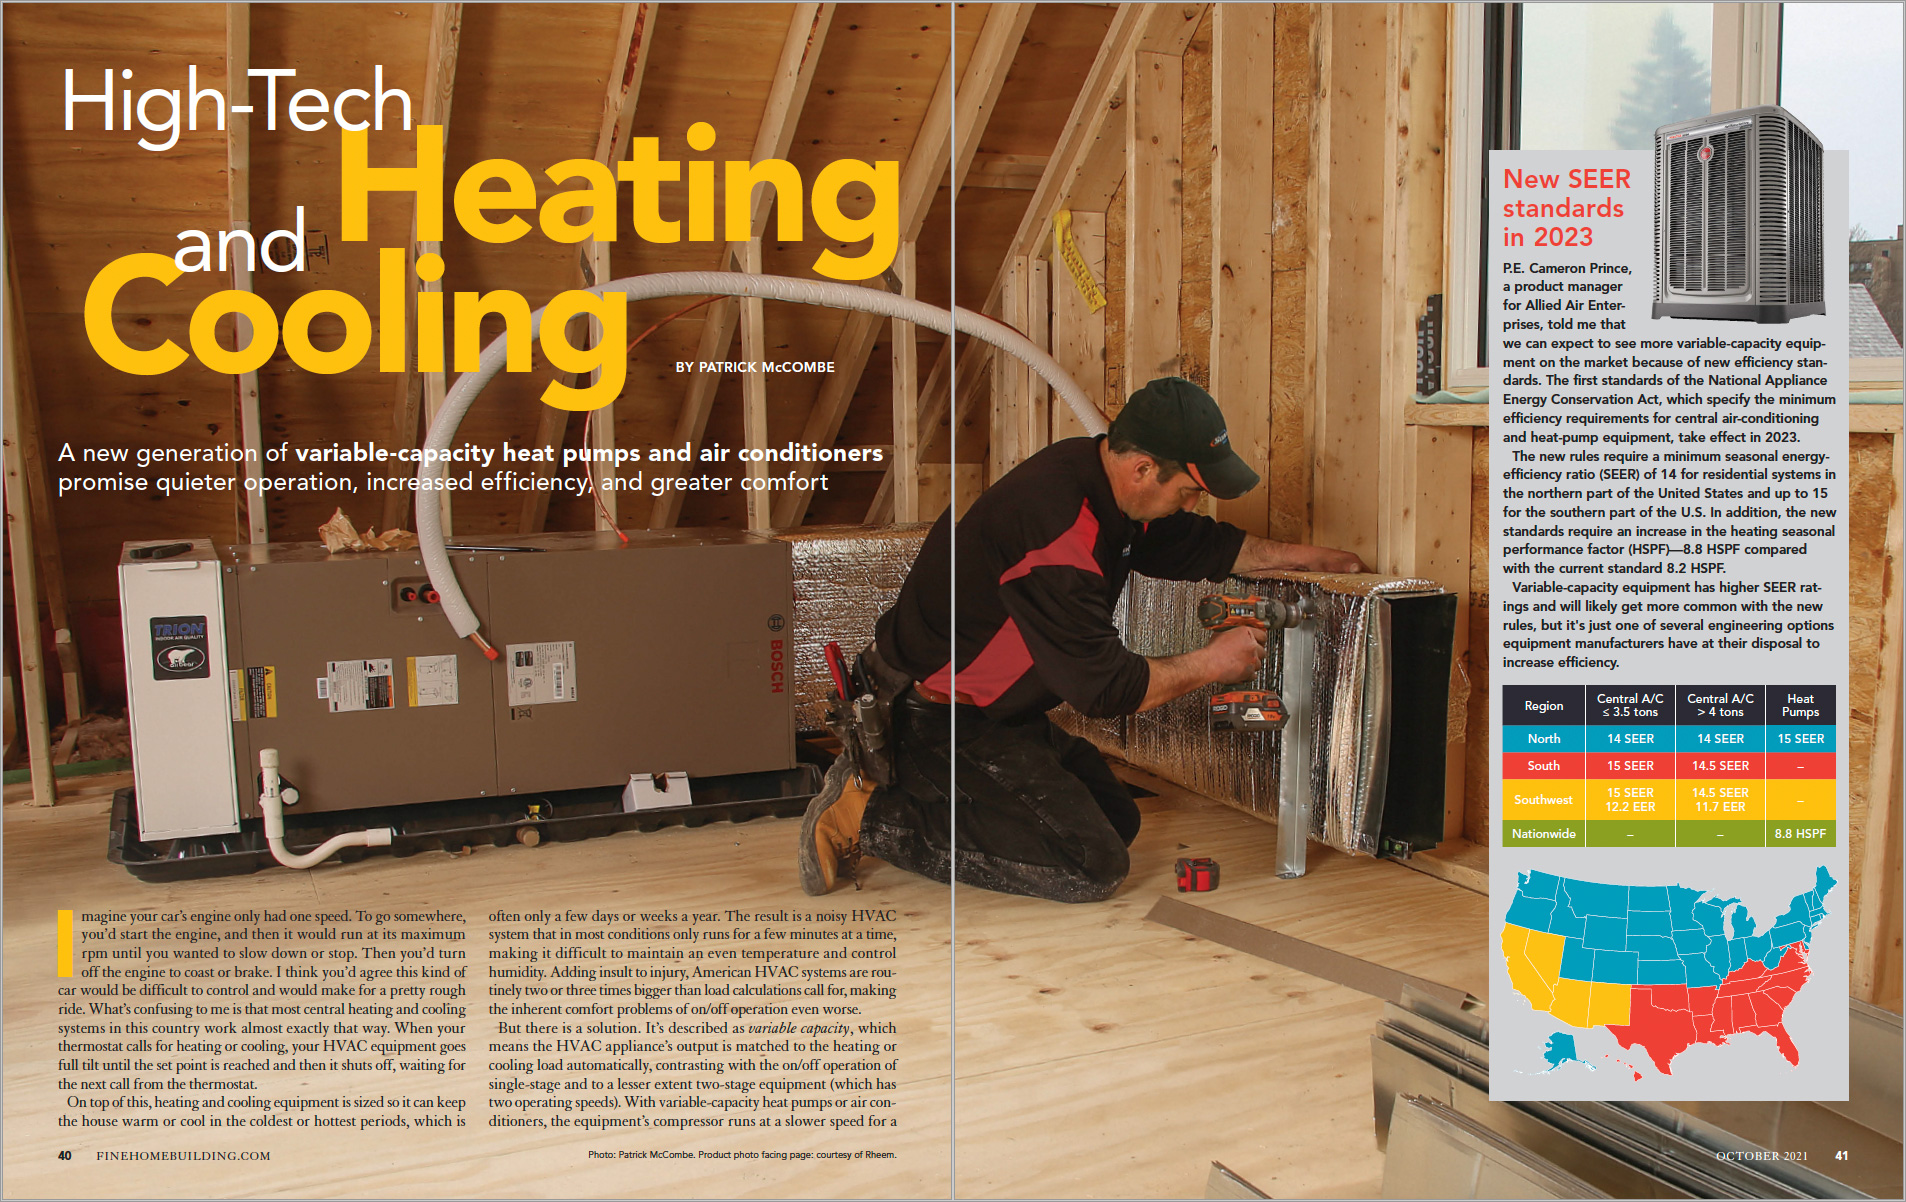 High-Tech Heating and Cooling spread